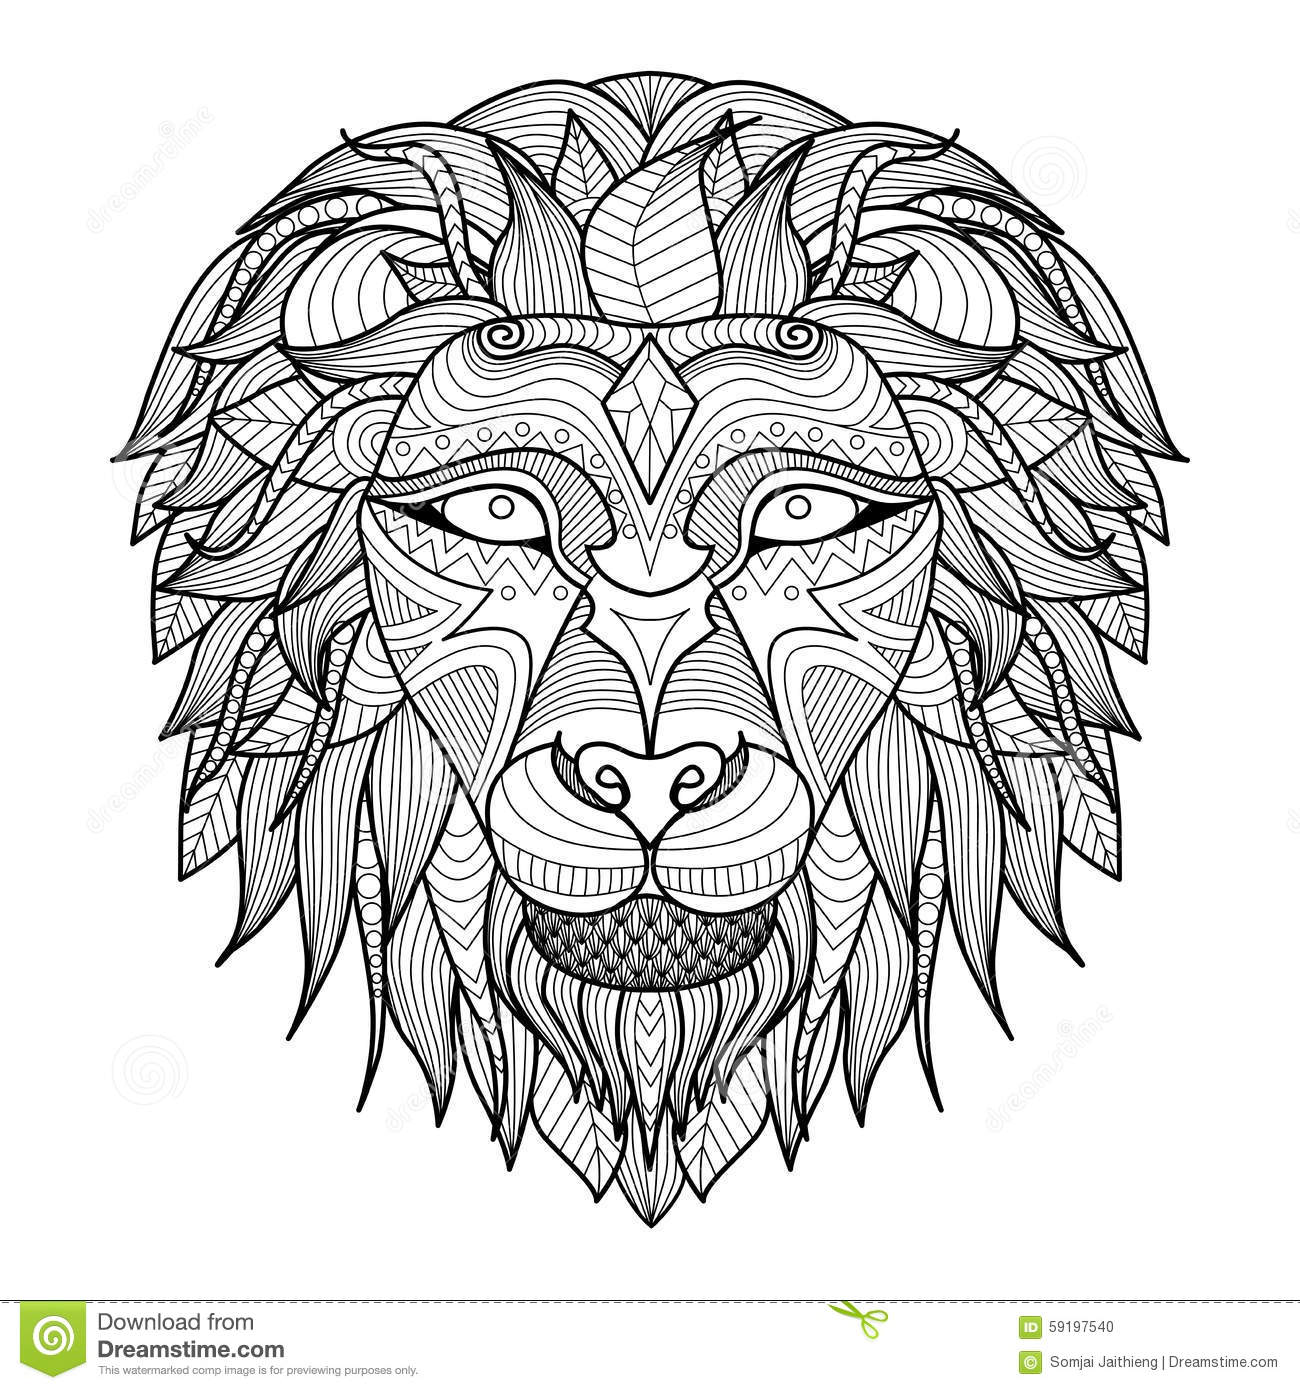 african design coloring pages - photo#32